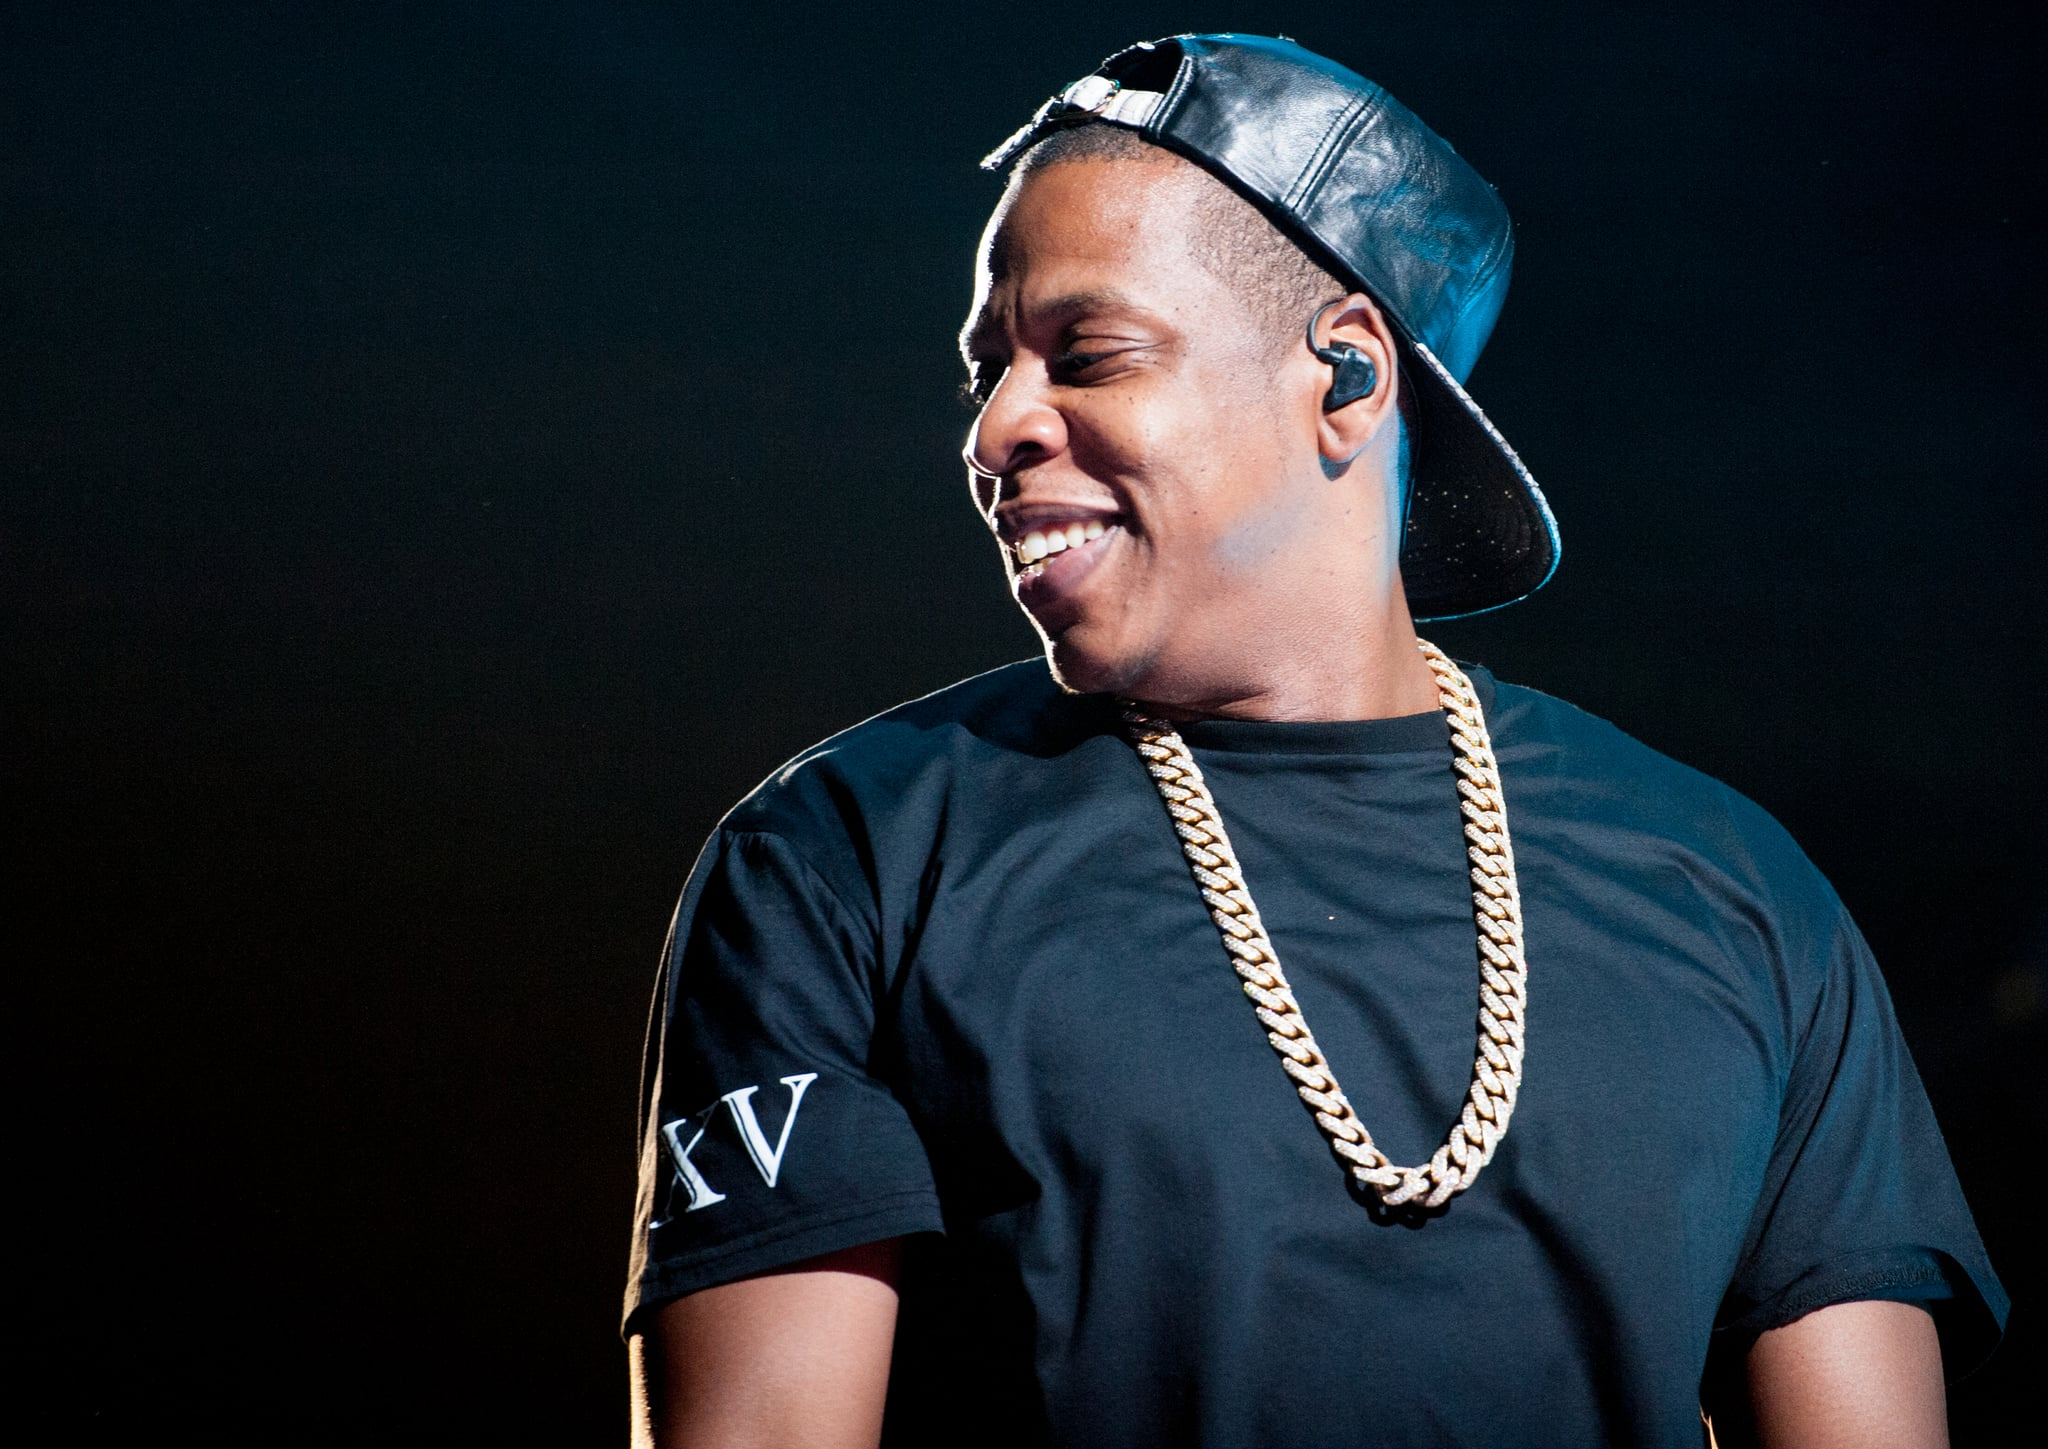 Jay-Z (Shawn Corey Carter) 30 Richest Celebrities in the world